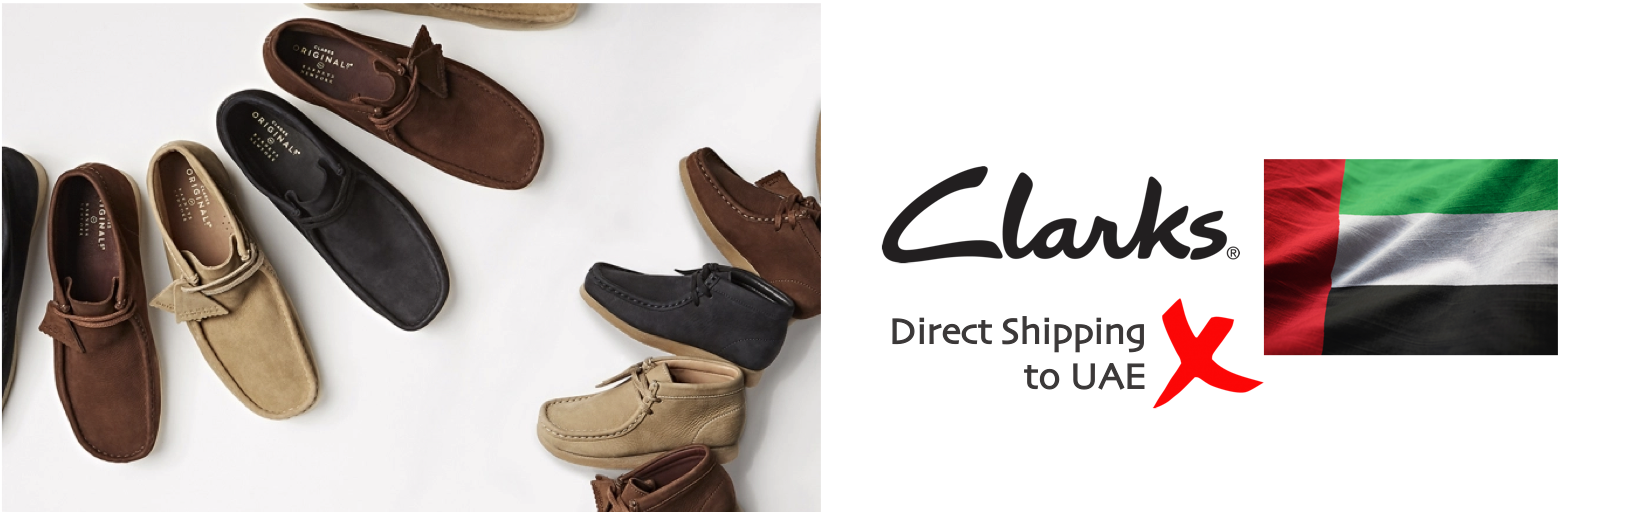 shop Clarks ship to uae